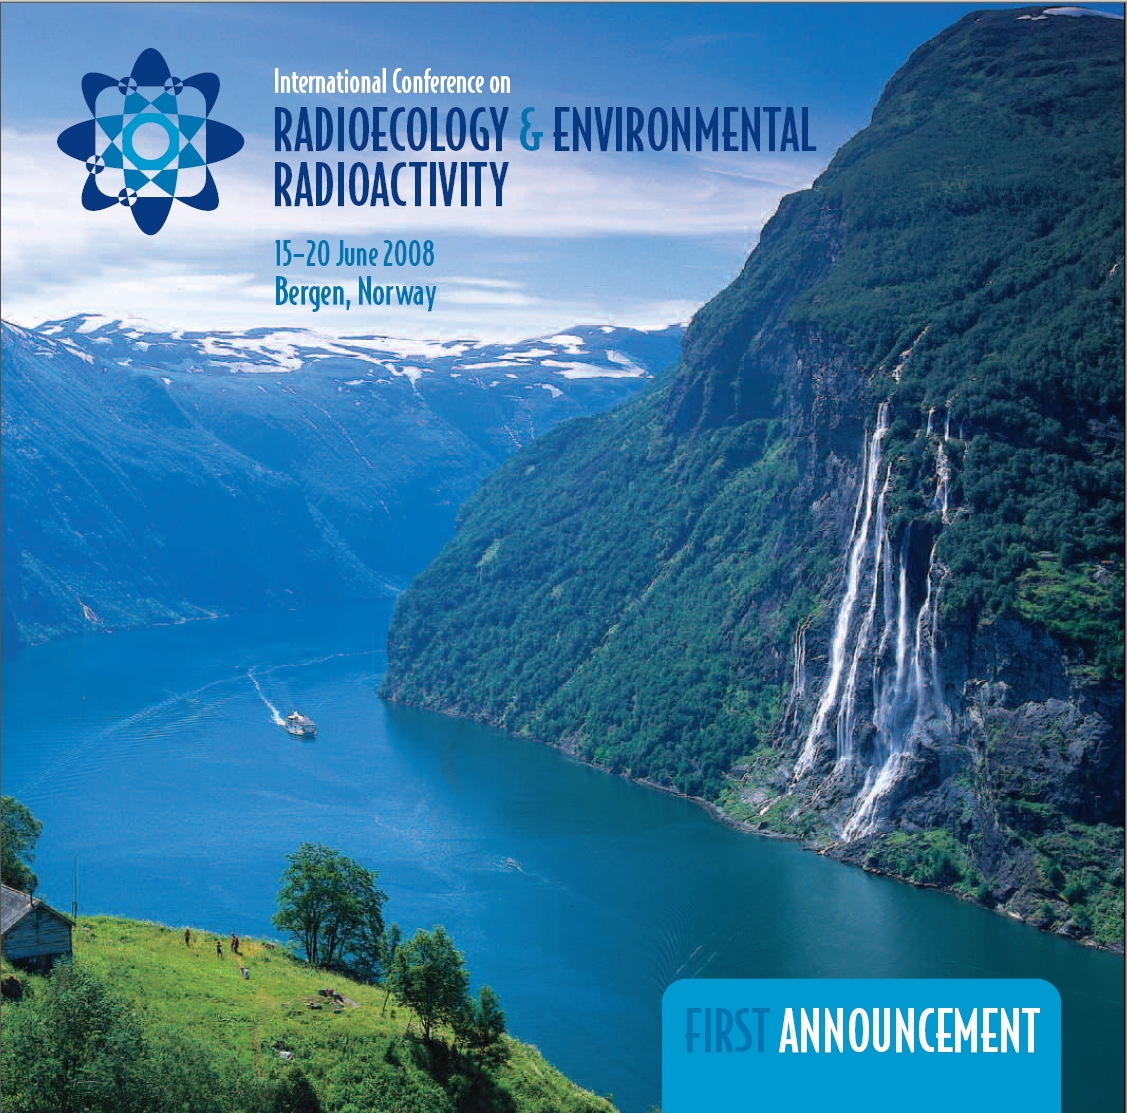 International conference on radioecology and environmental radioactivity. Bergen, Norway, 15 - 20 June 2008